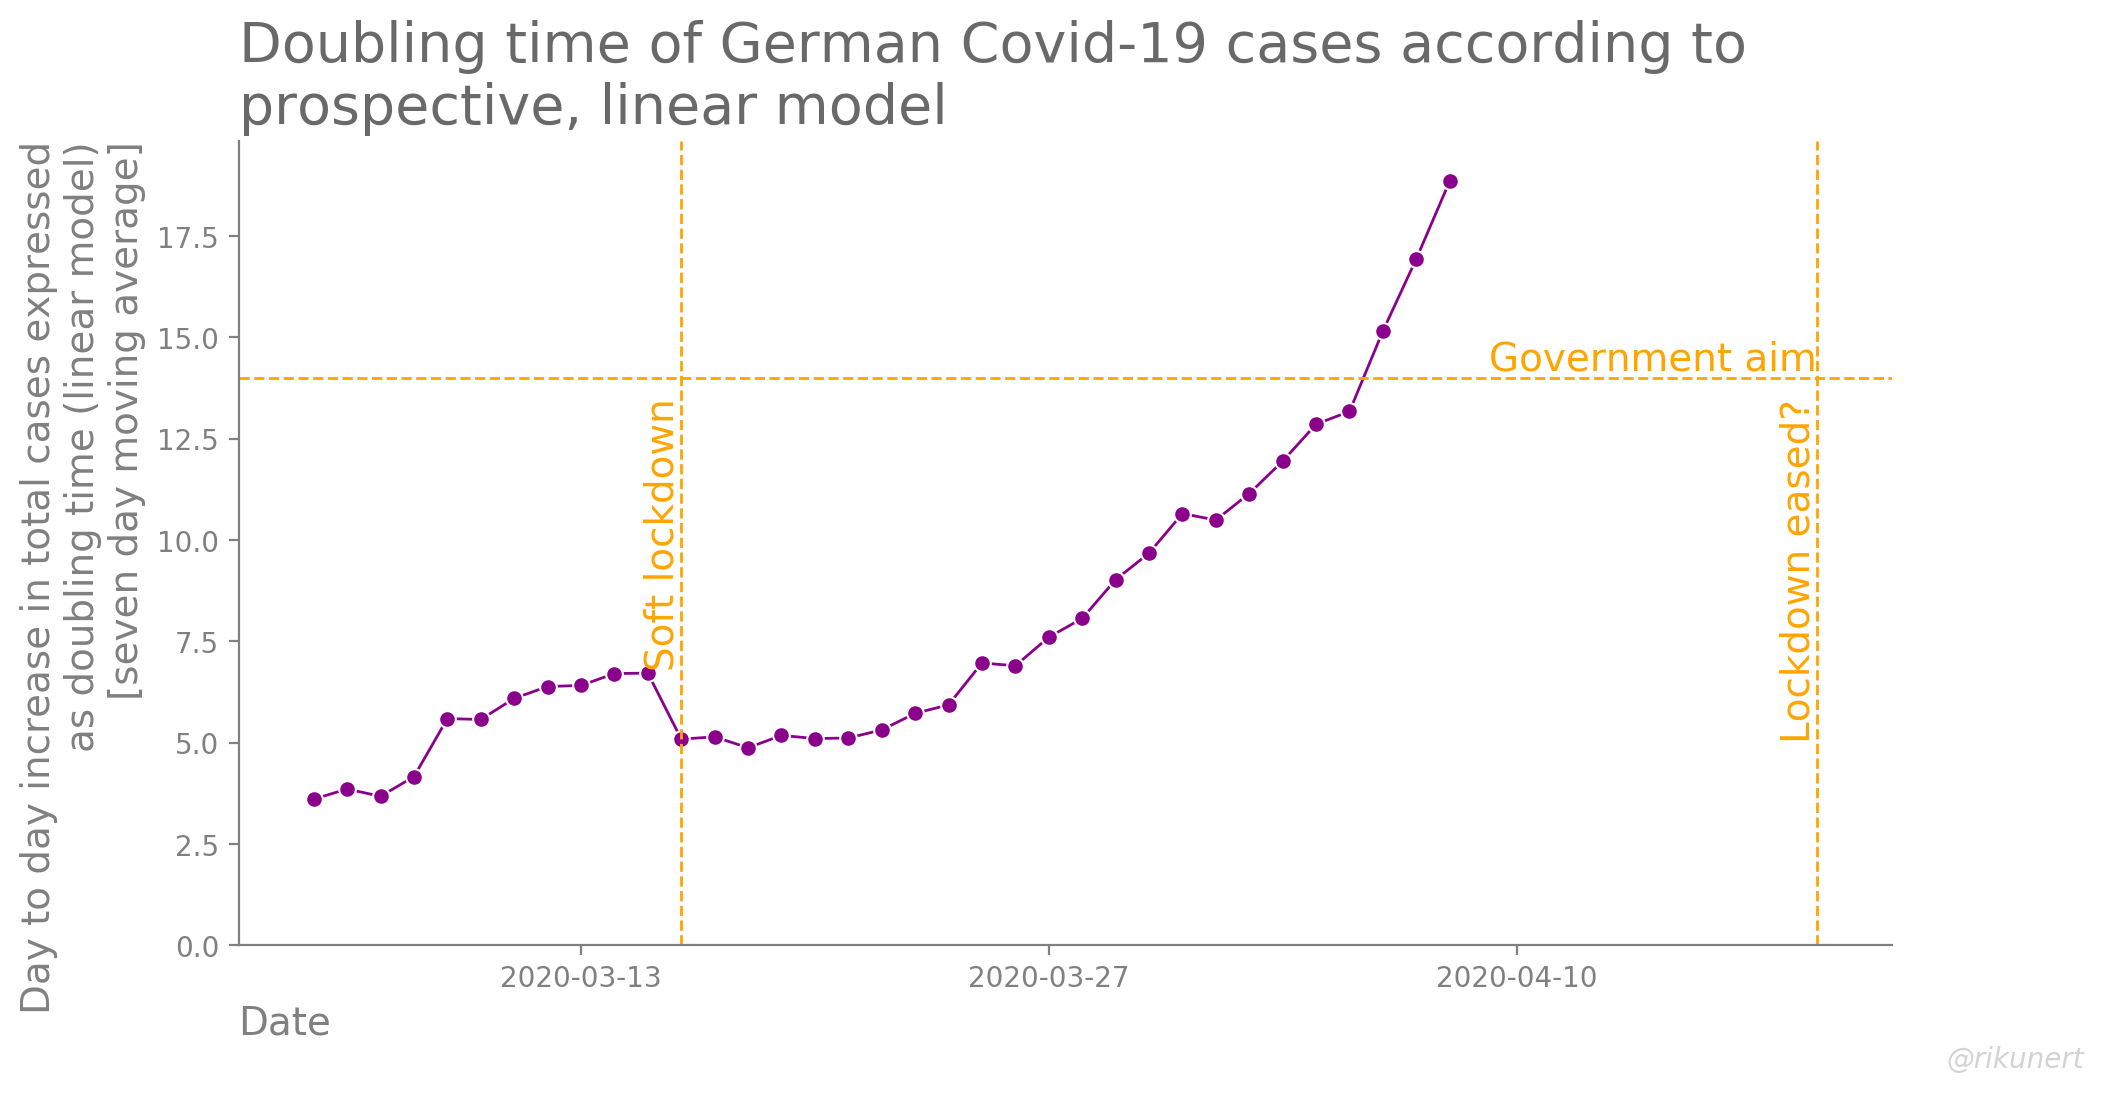 Doubling time assuming an linear model for total Covid-19 case growth in Germany